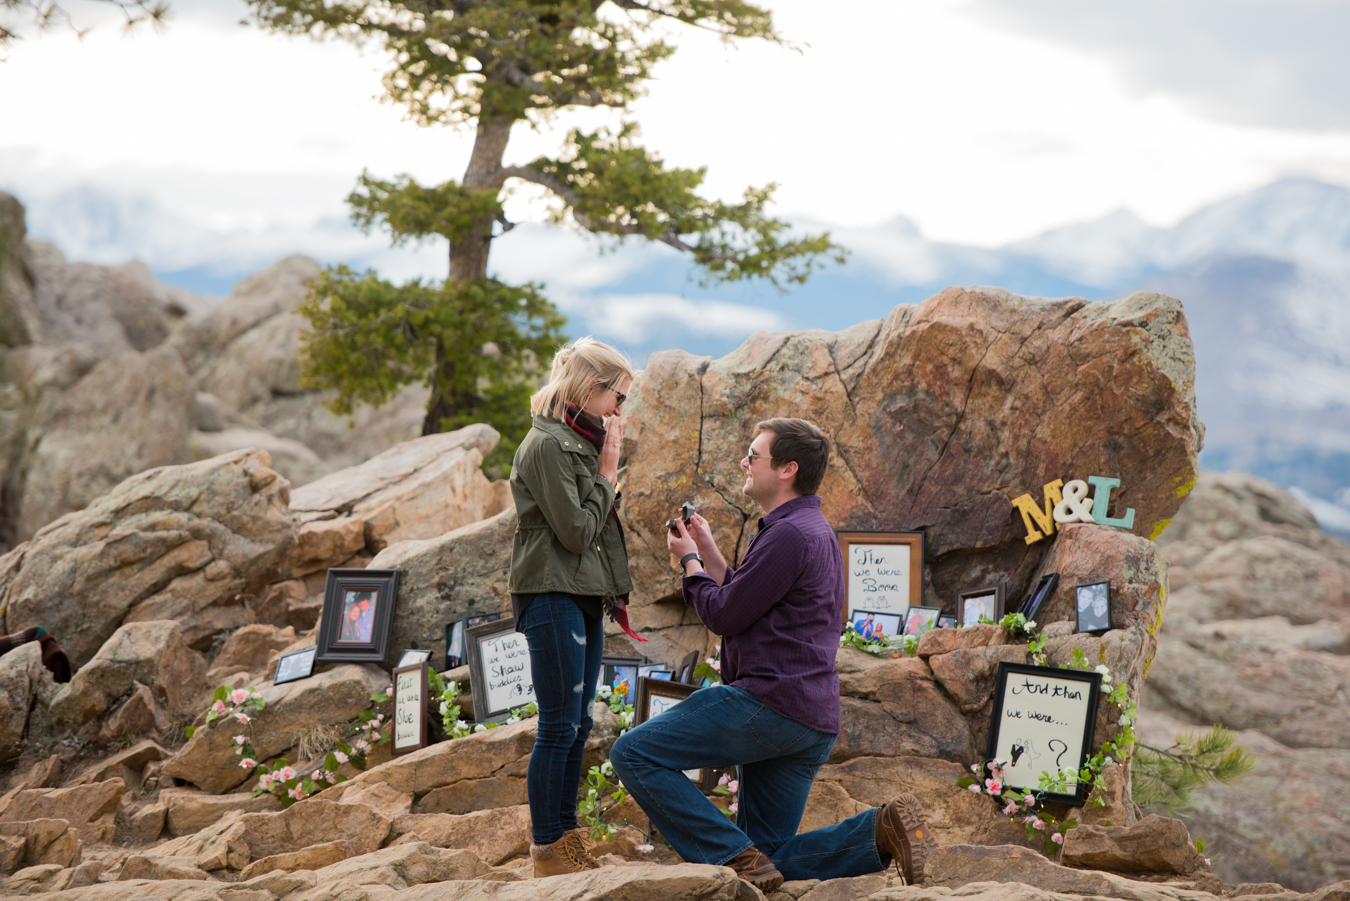 Choosing the Right Proposal Location